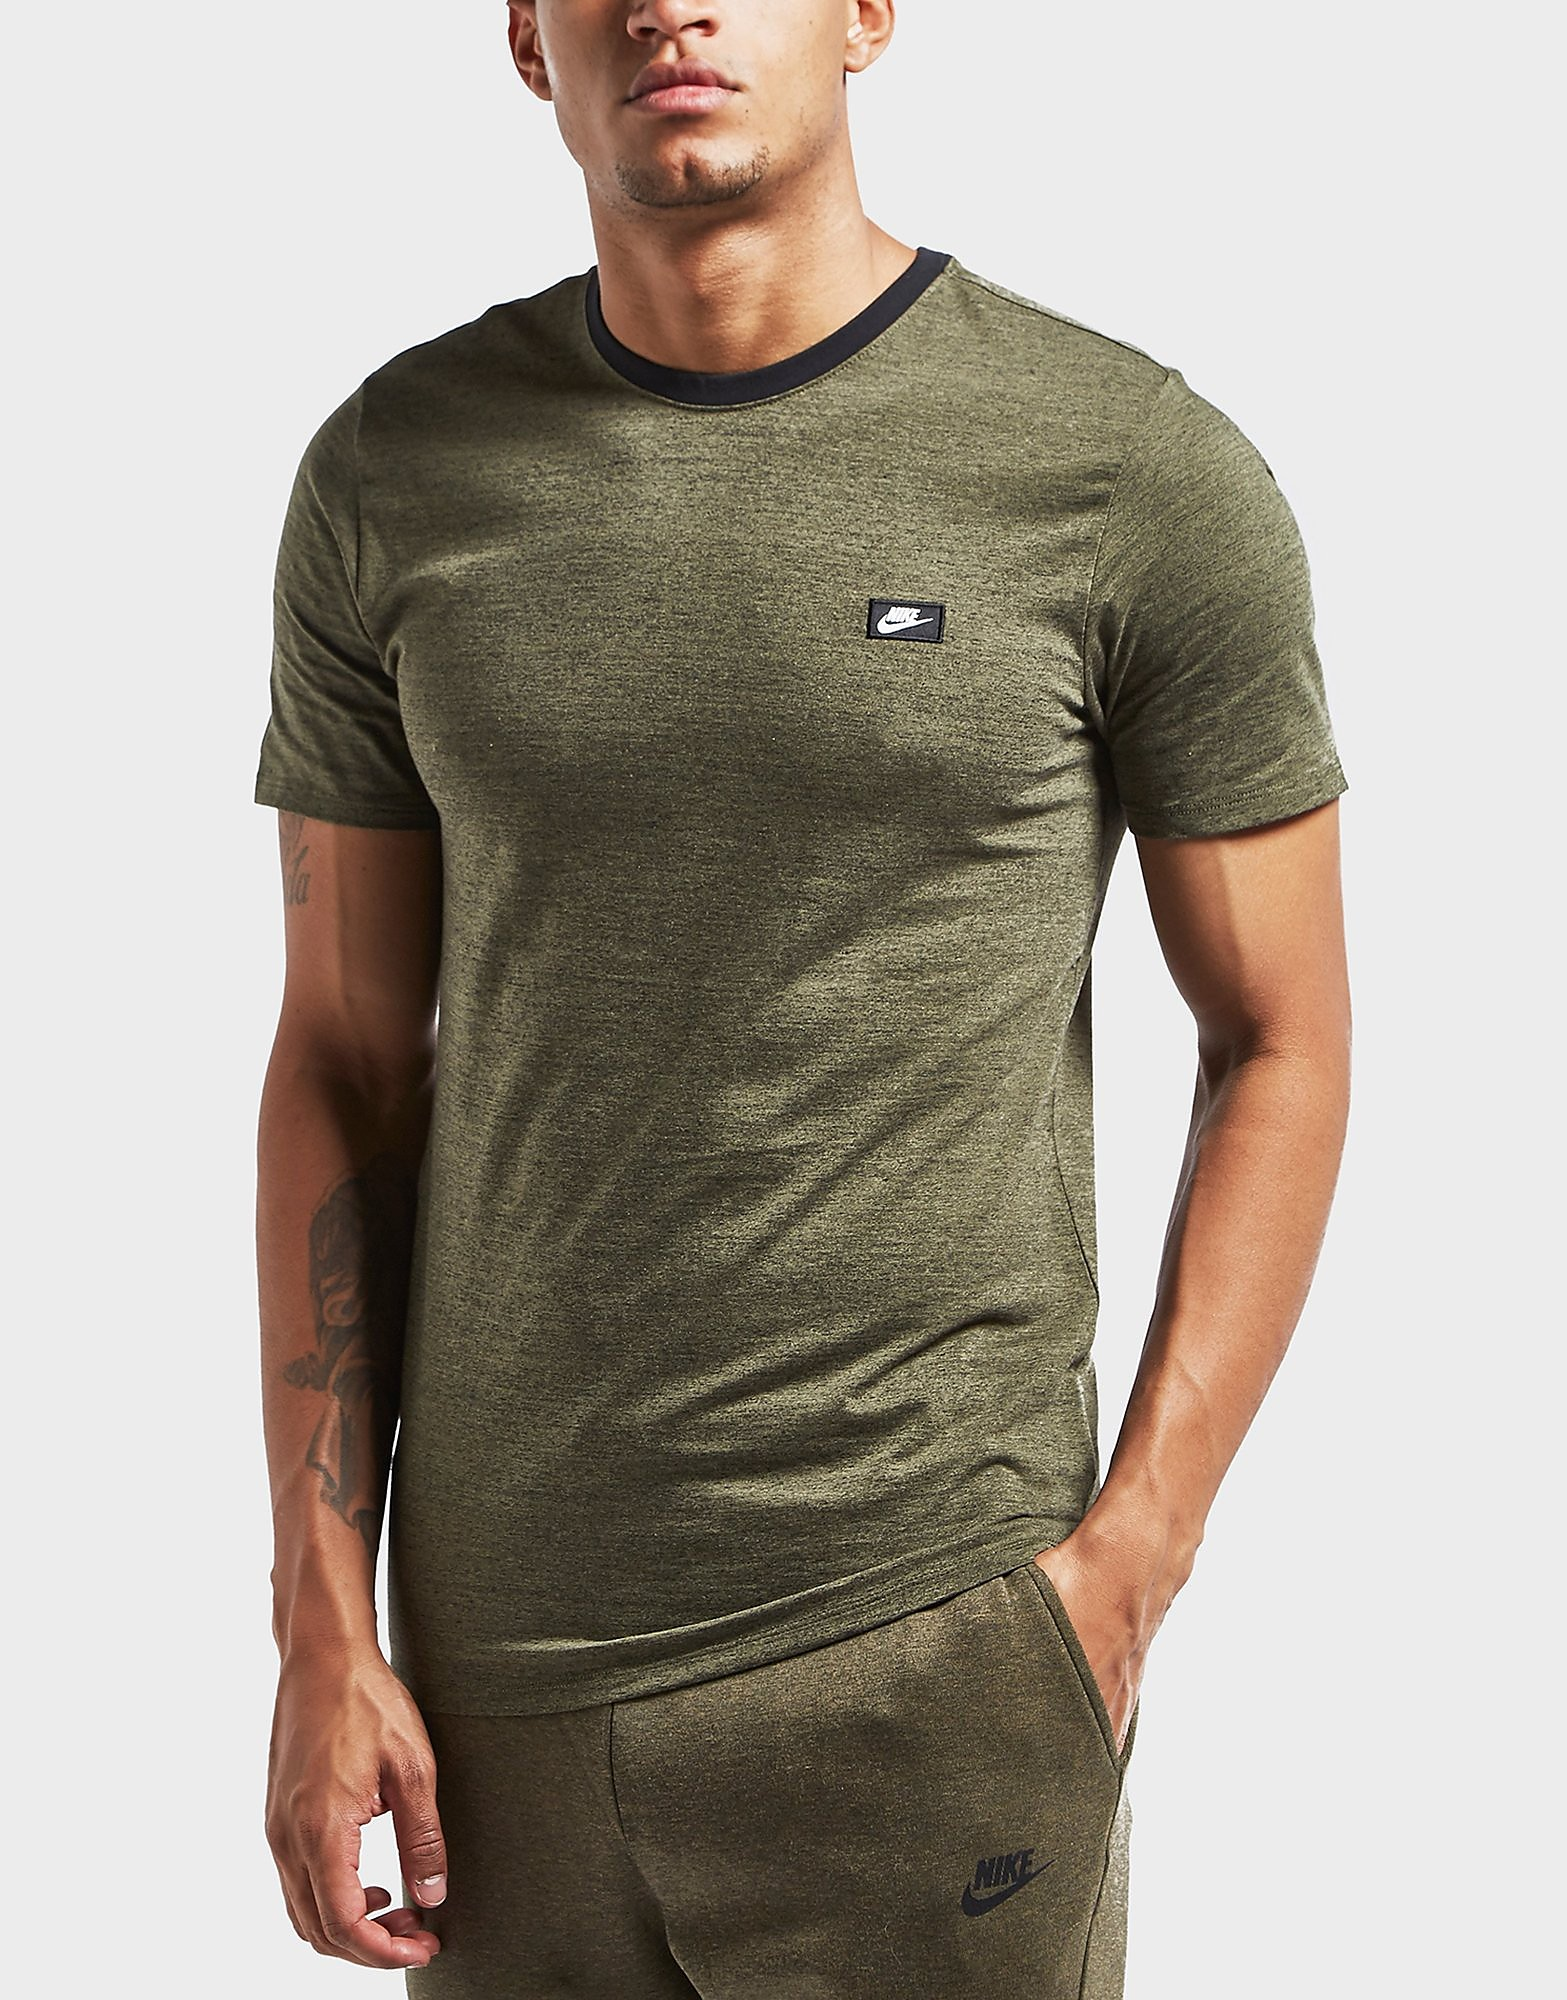 Nike Modern Ring Short Sleeve T-Shirt